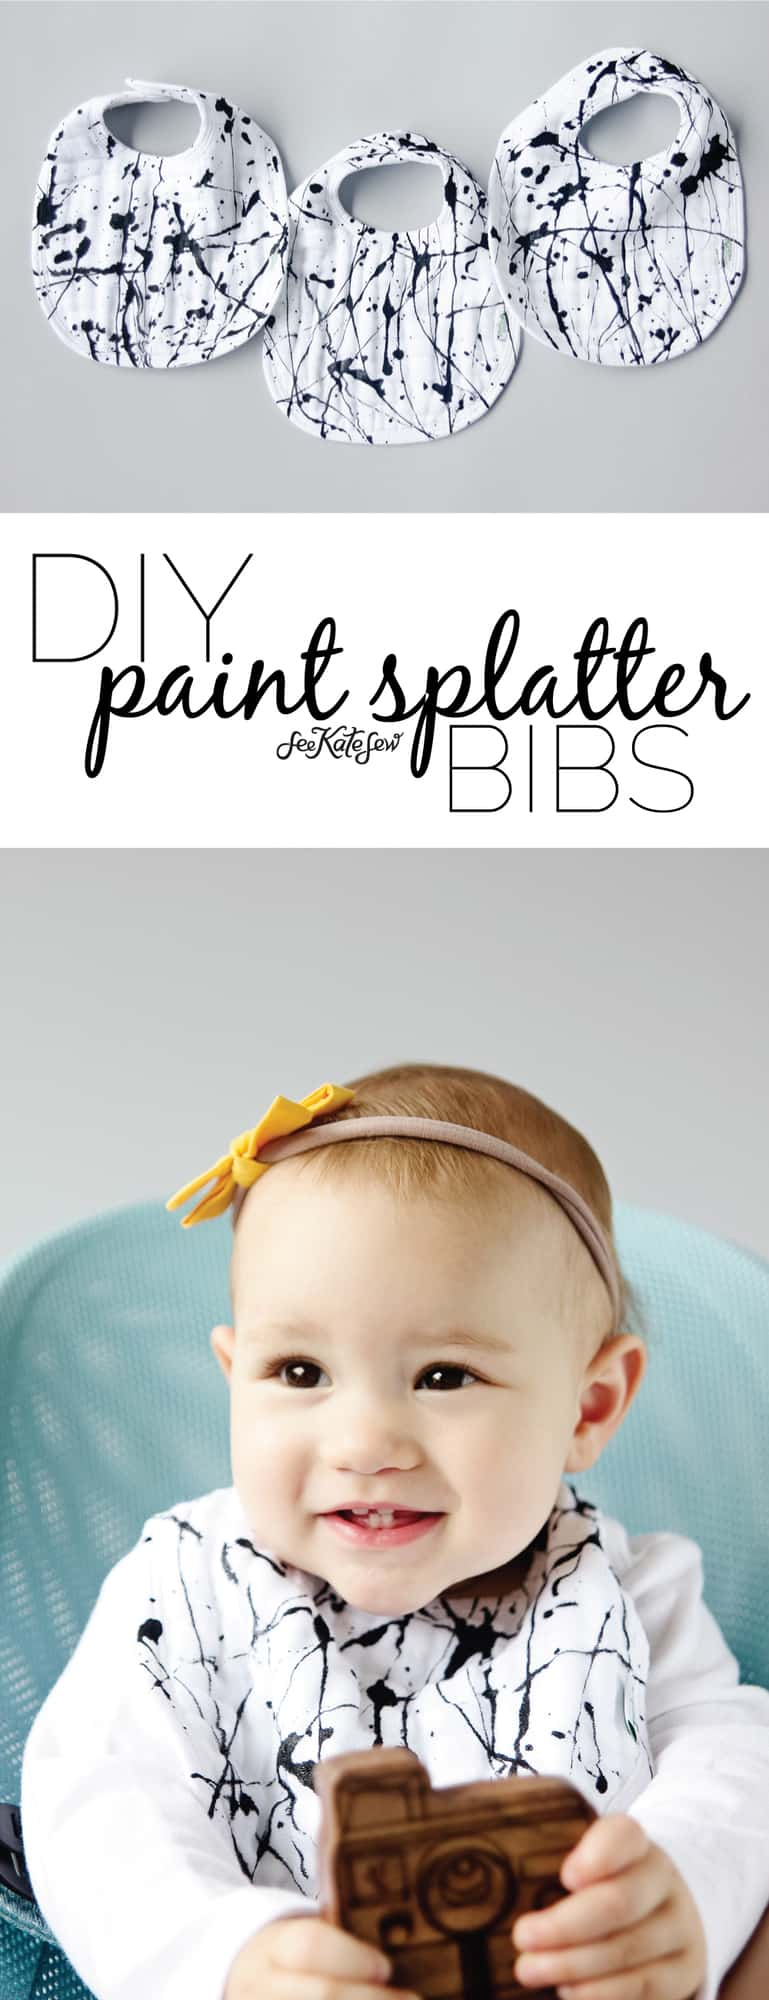 Paint Splatter Bibs | See Kate Sew